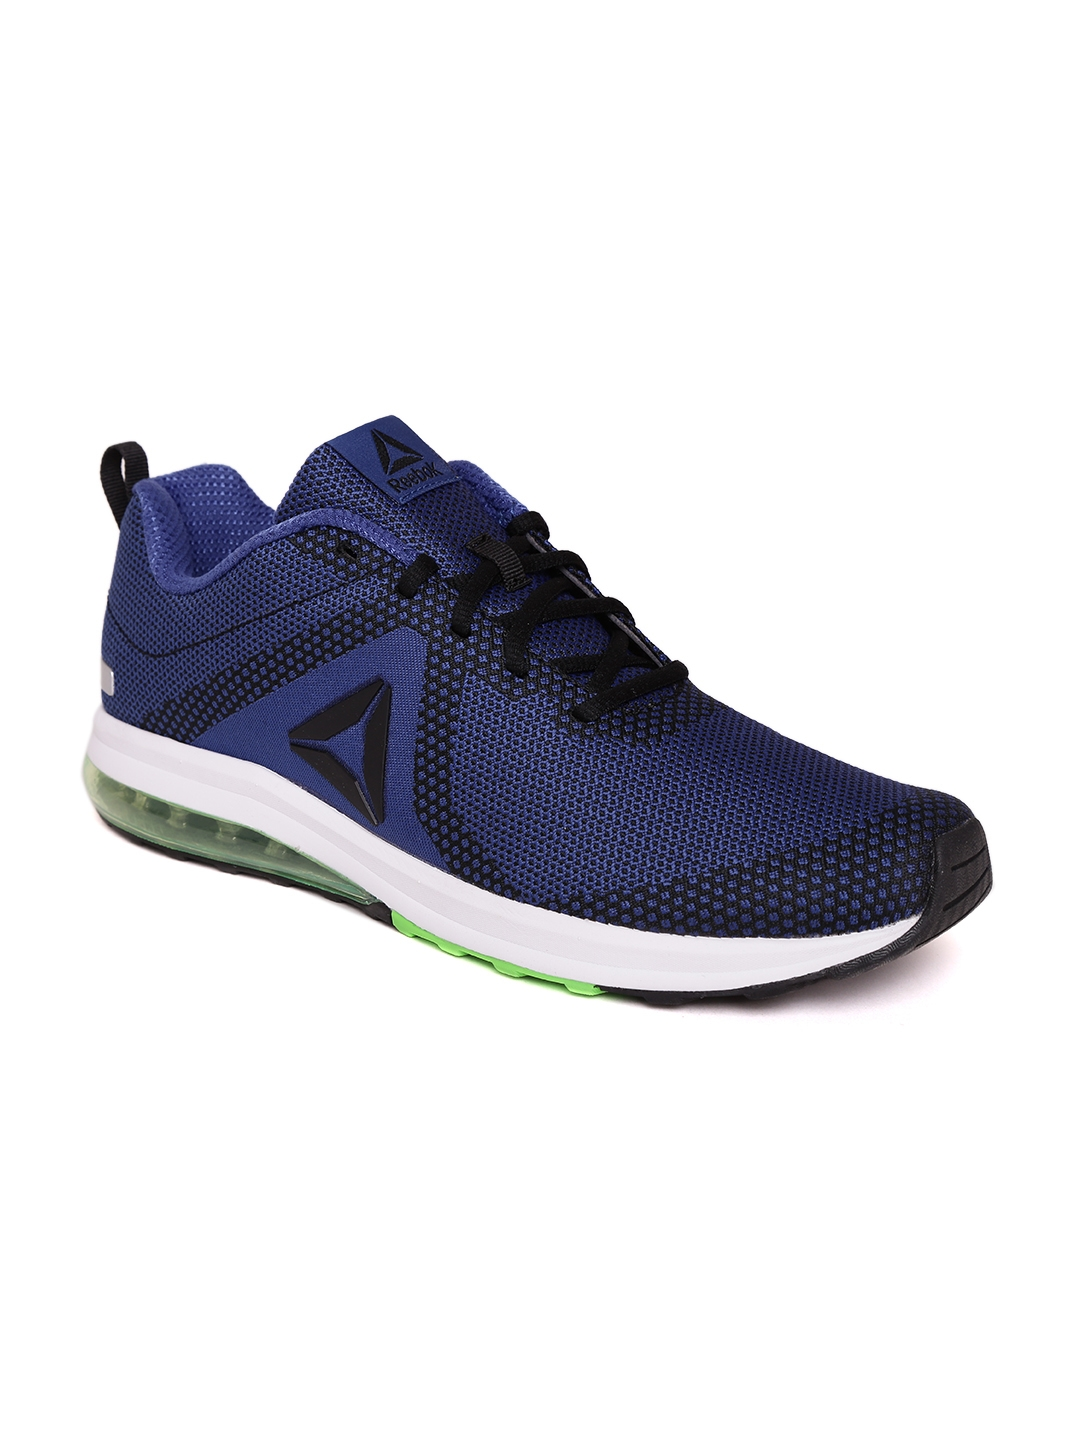 62b499f90e9e Buy Reebok Men Blue Jet Dashride 6.0 Running Shoes - Sports Shoes ...